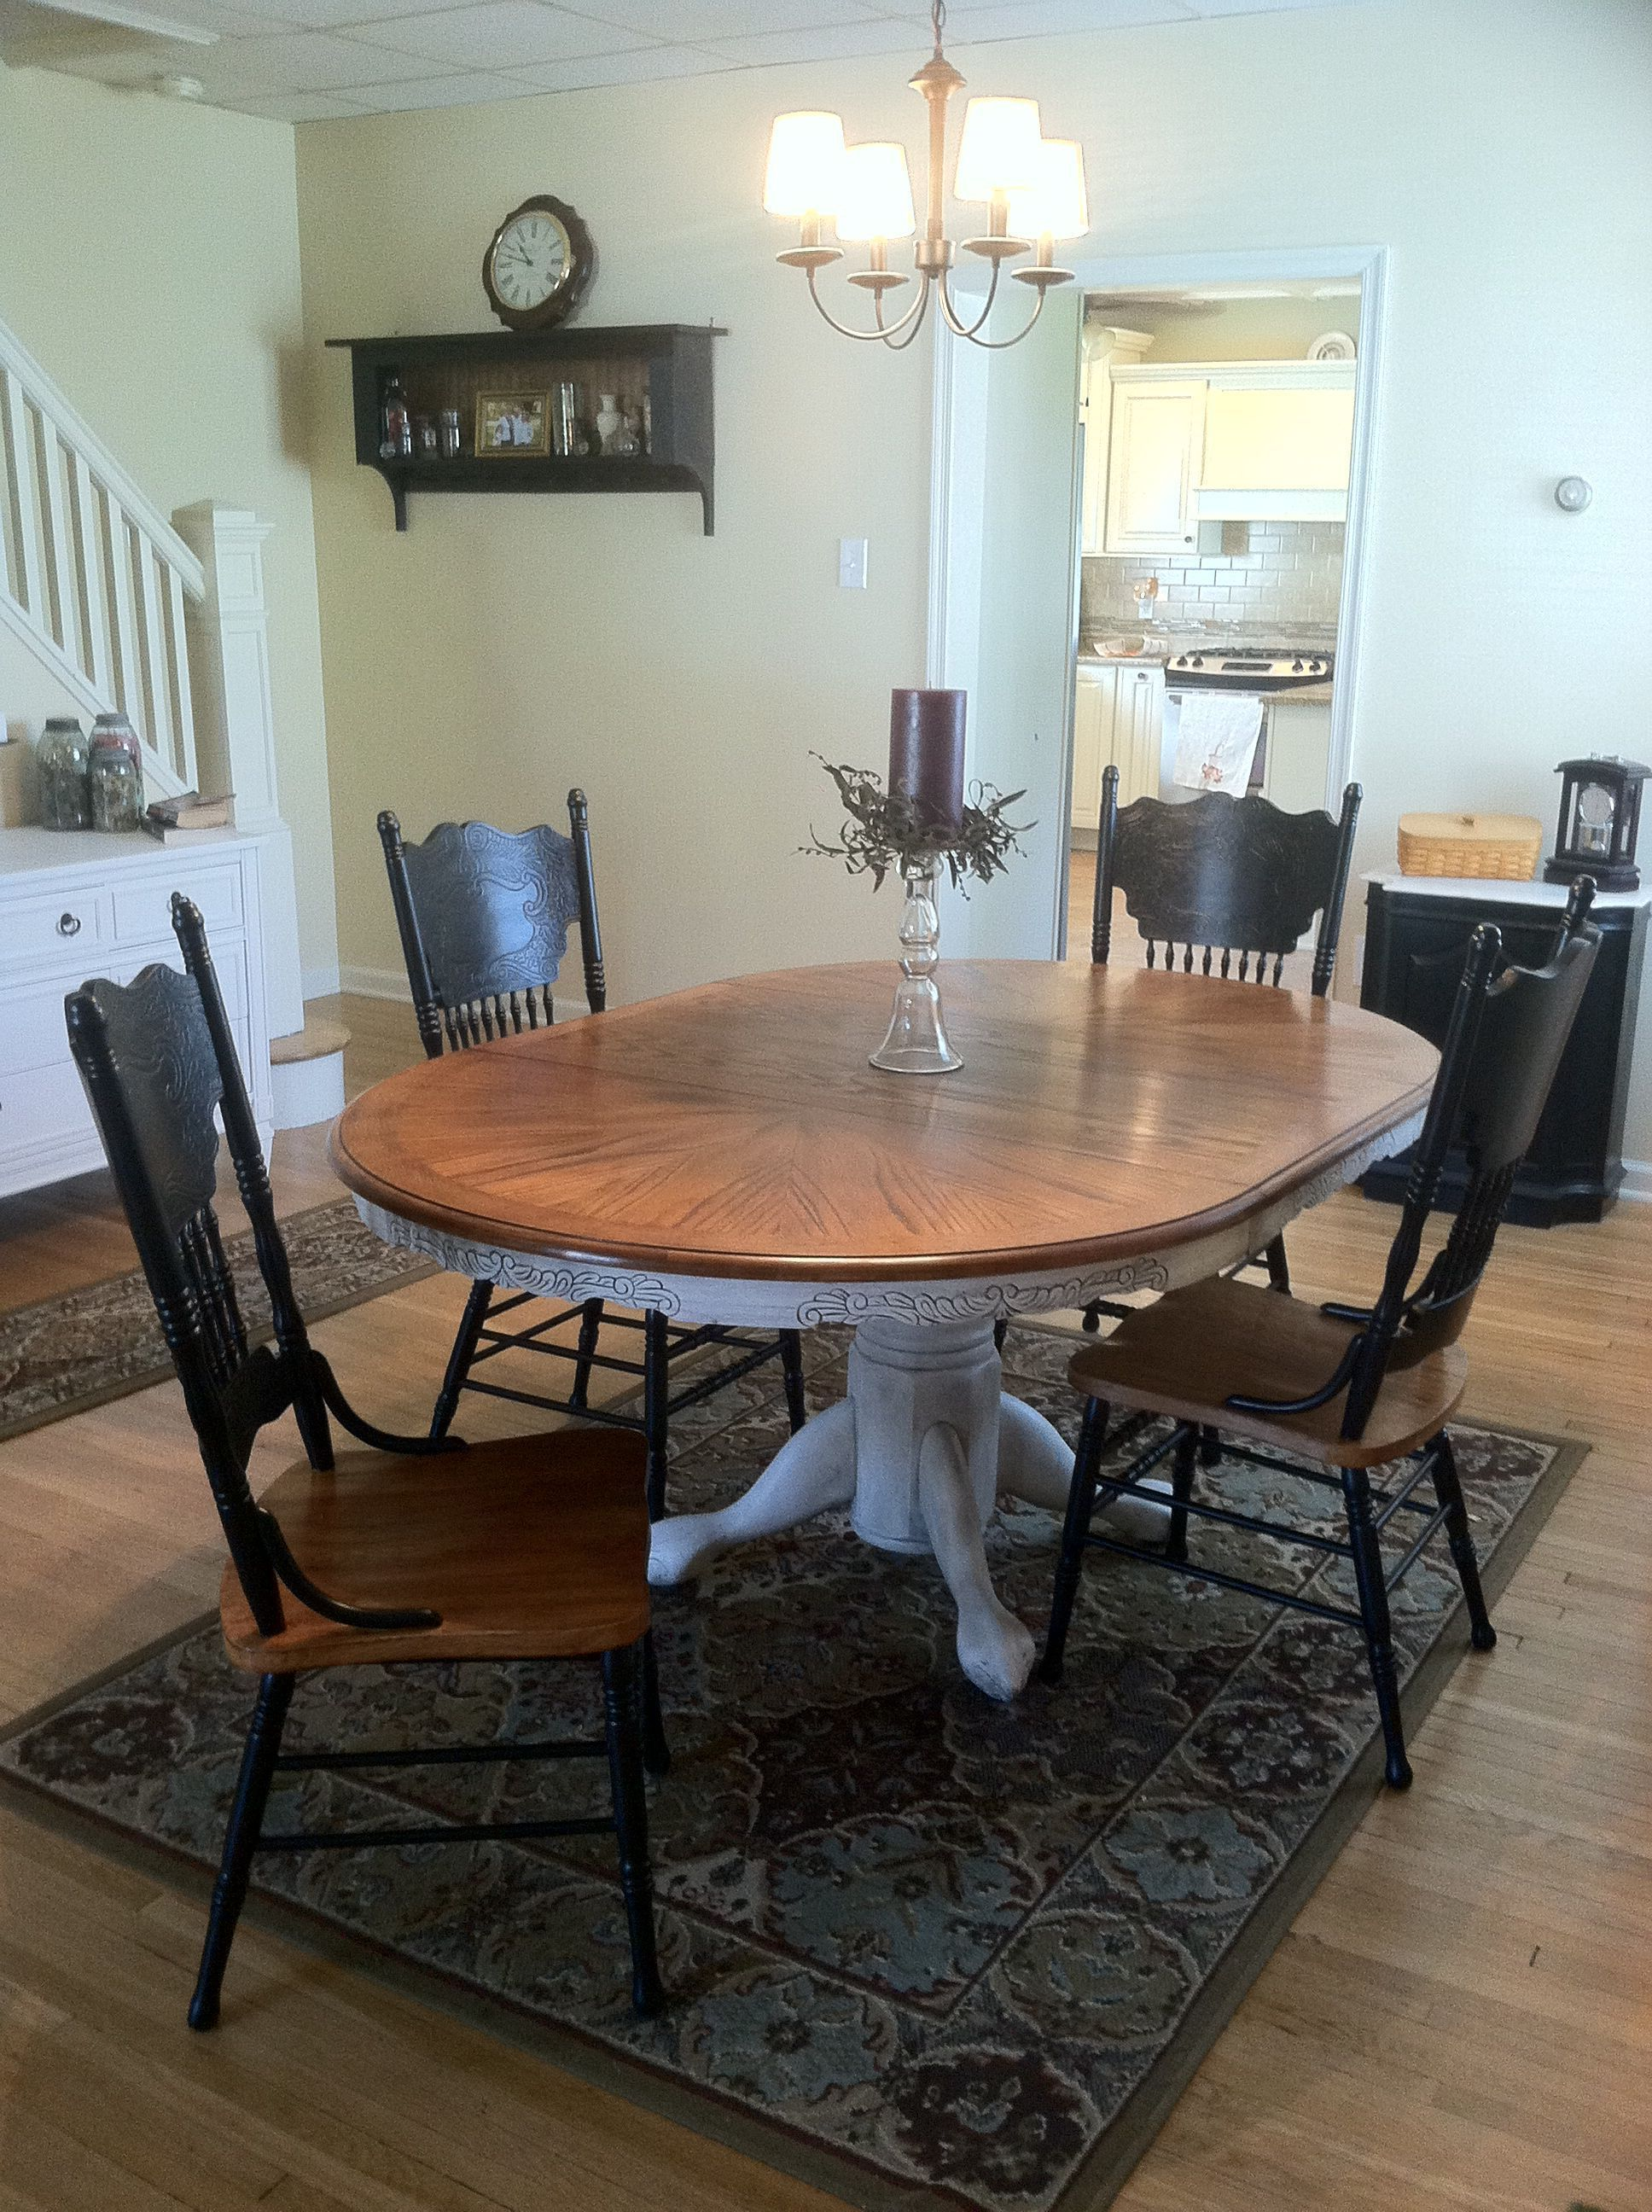 Kitchen Table And Chairs Redokitchen Table And Chairs Redo Ever Find Yourself In The Kitchen A Oak Dining Room Set Oak Dining Room Dining Room Table Makeover